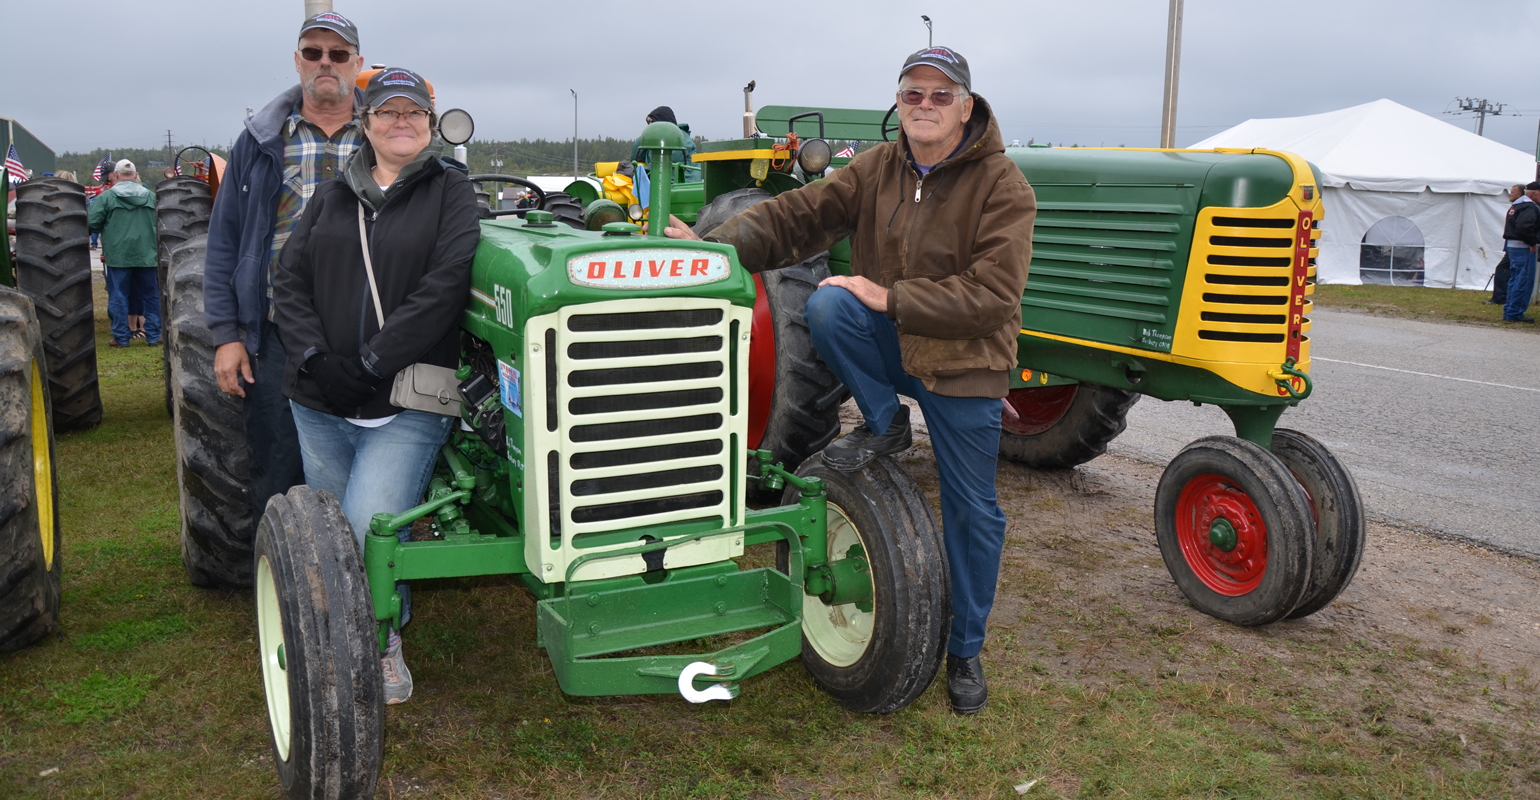 Mike, Theresa and Bob Thompson with their tractors